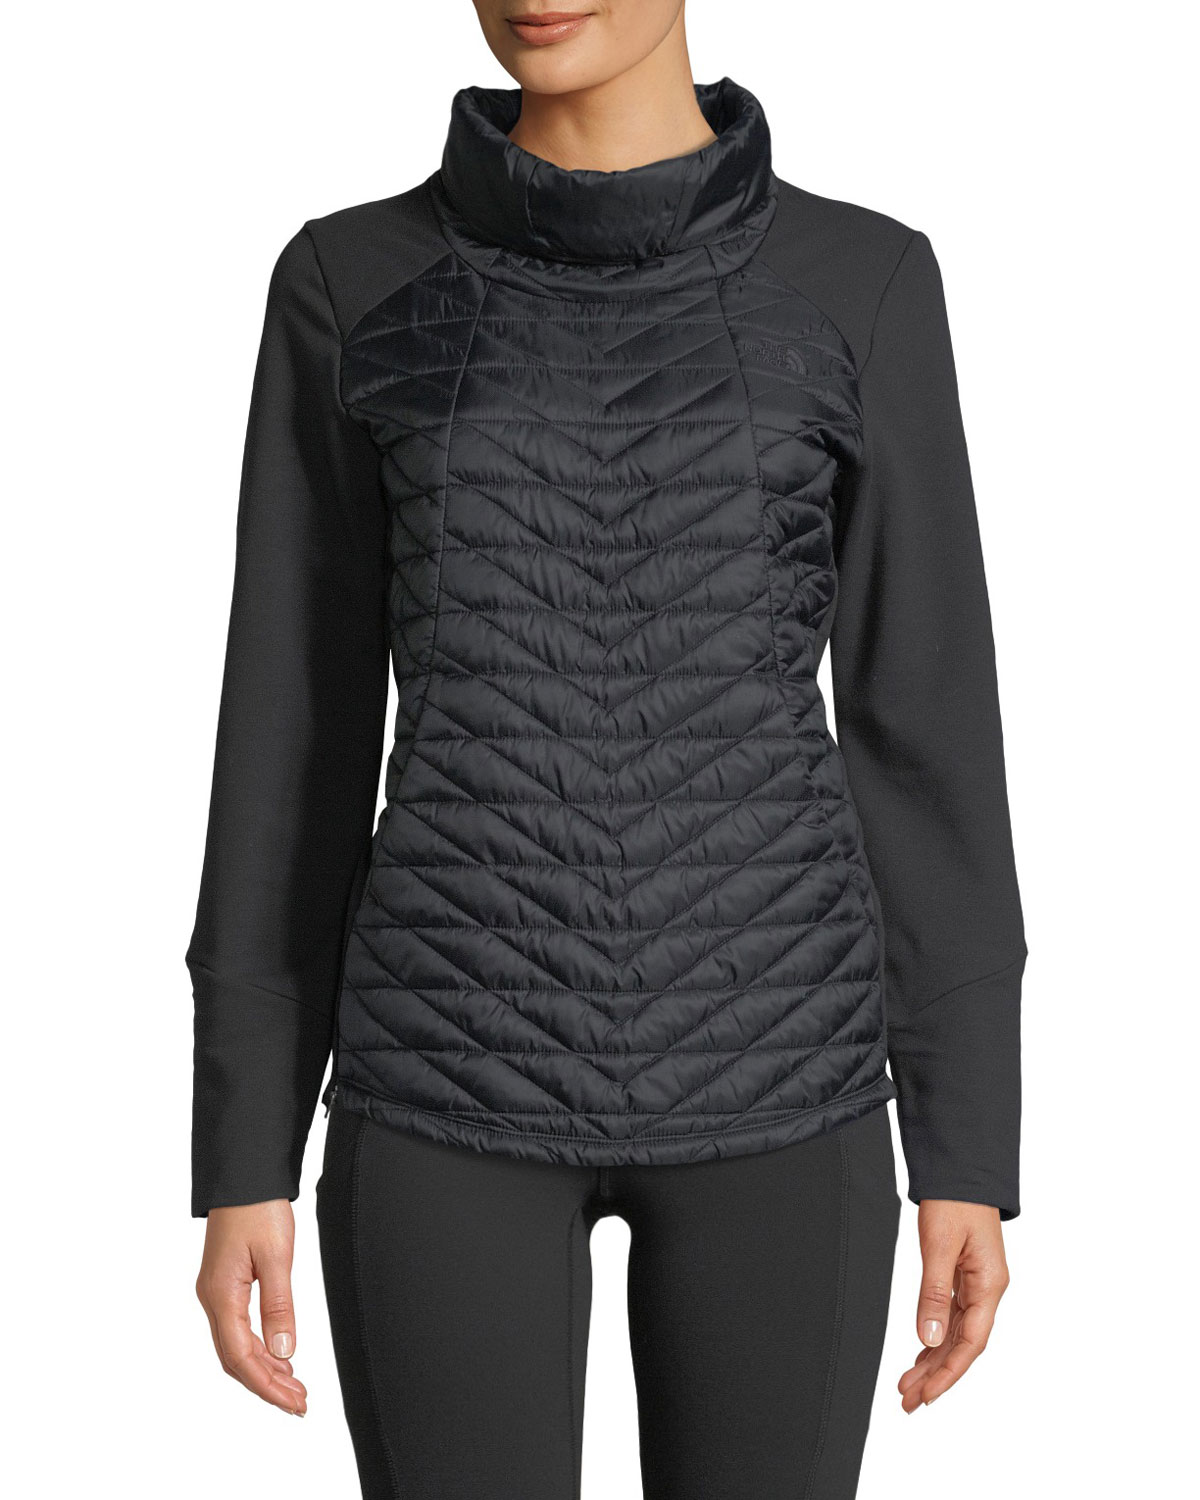 56c4ded7ec The North Face Motivation Thermoball Insulated Performance Pullover Jacket